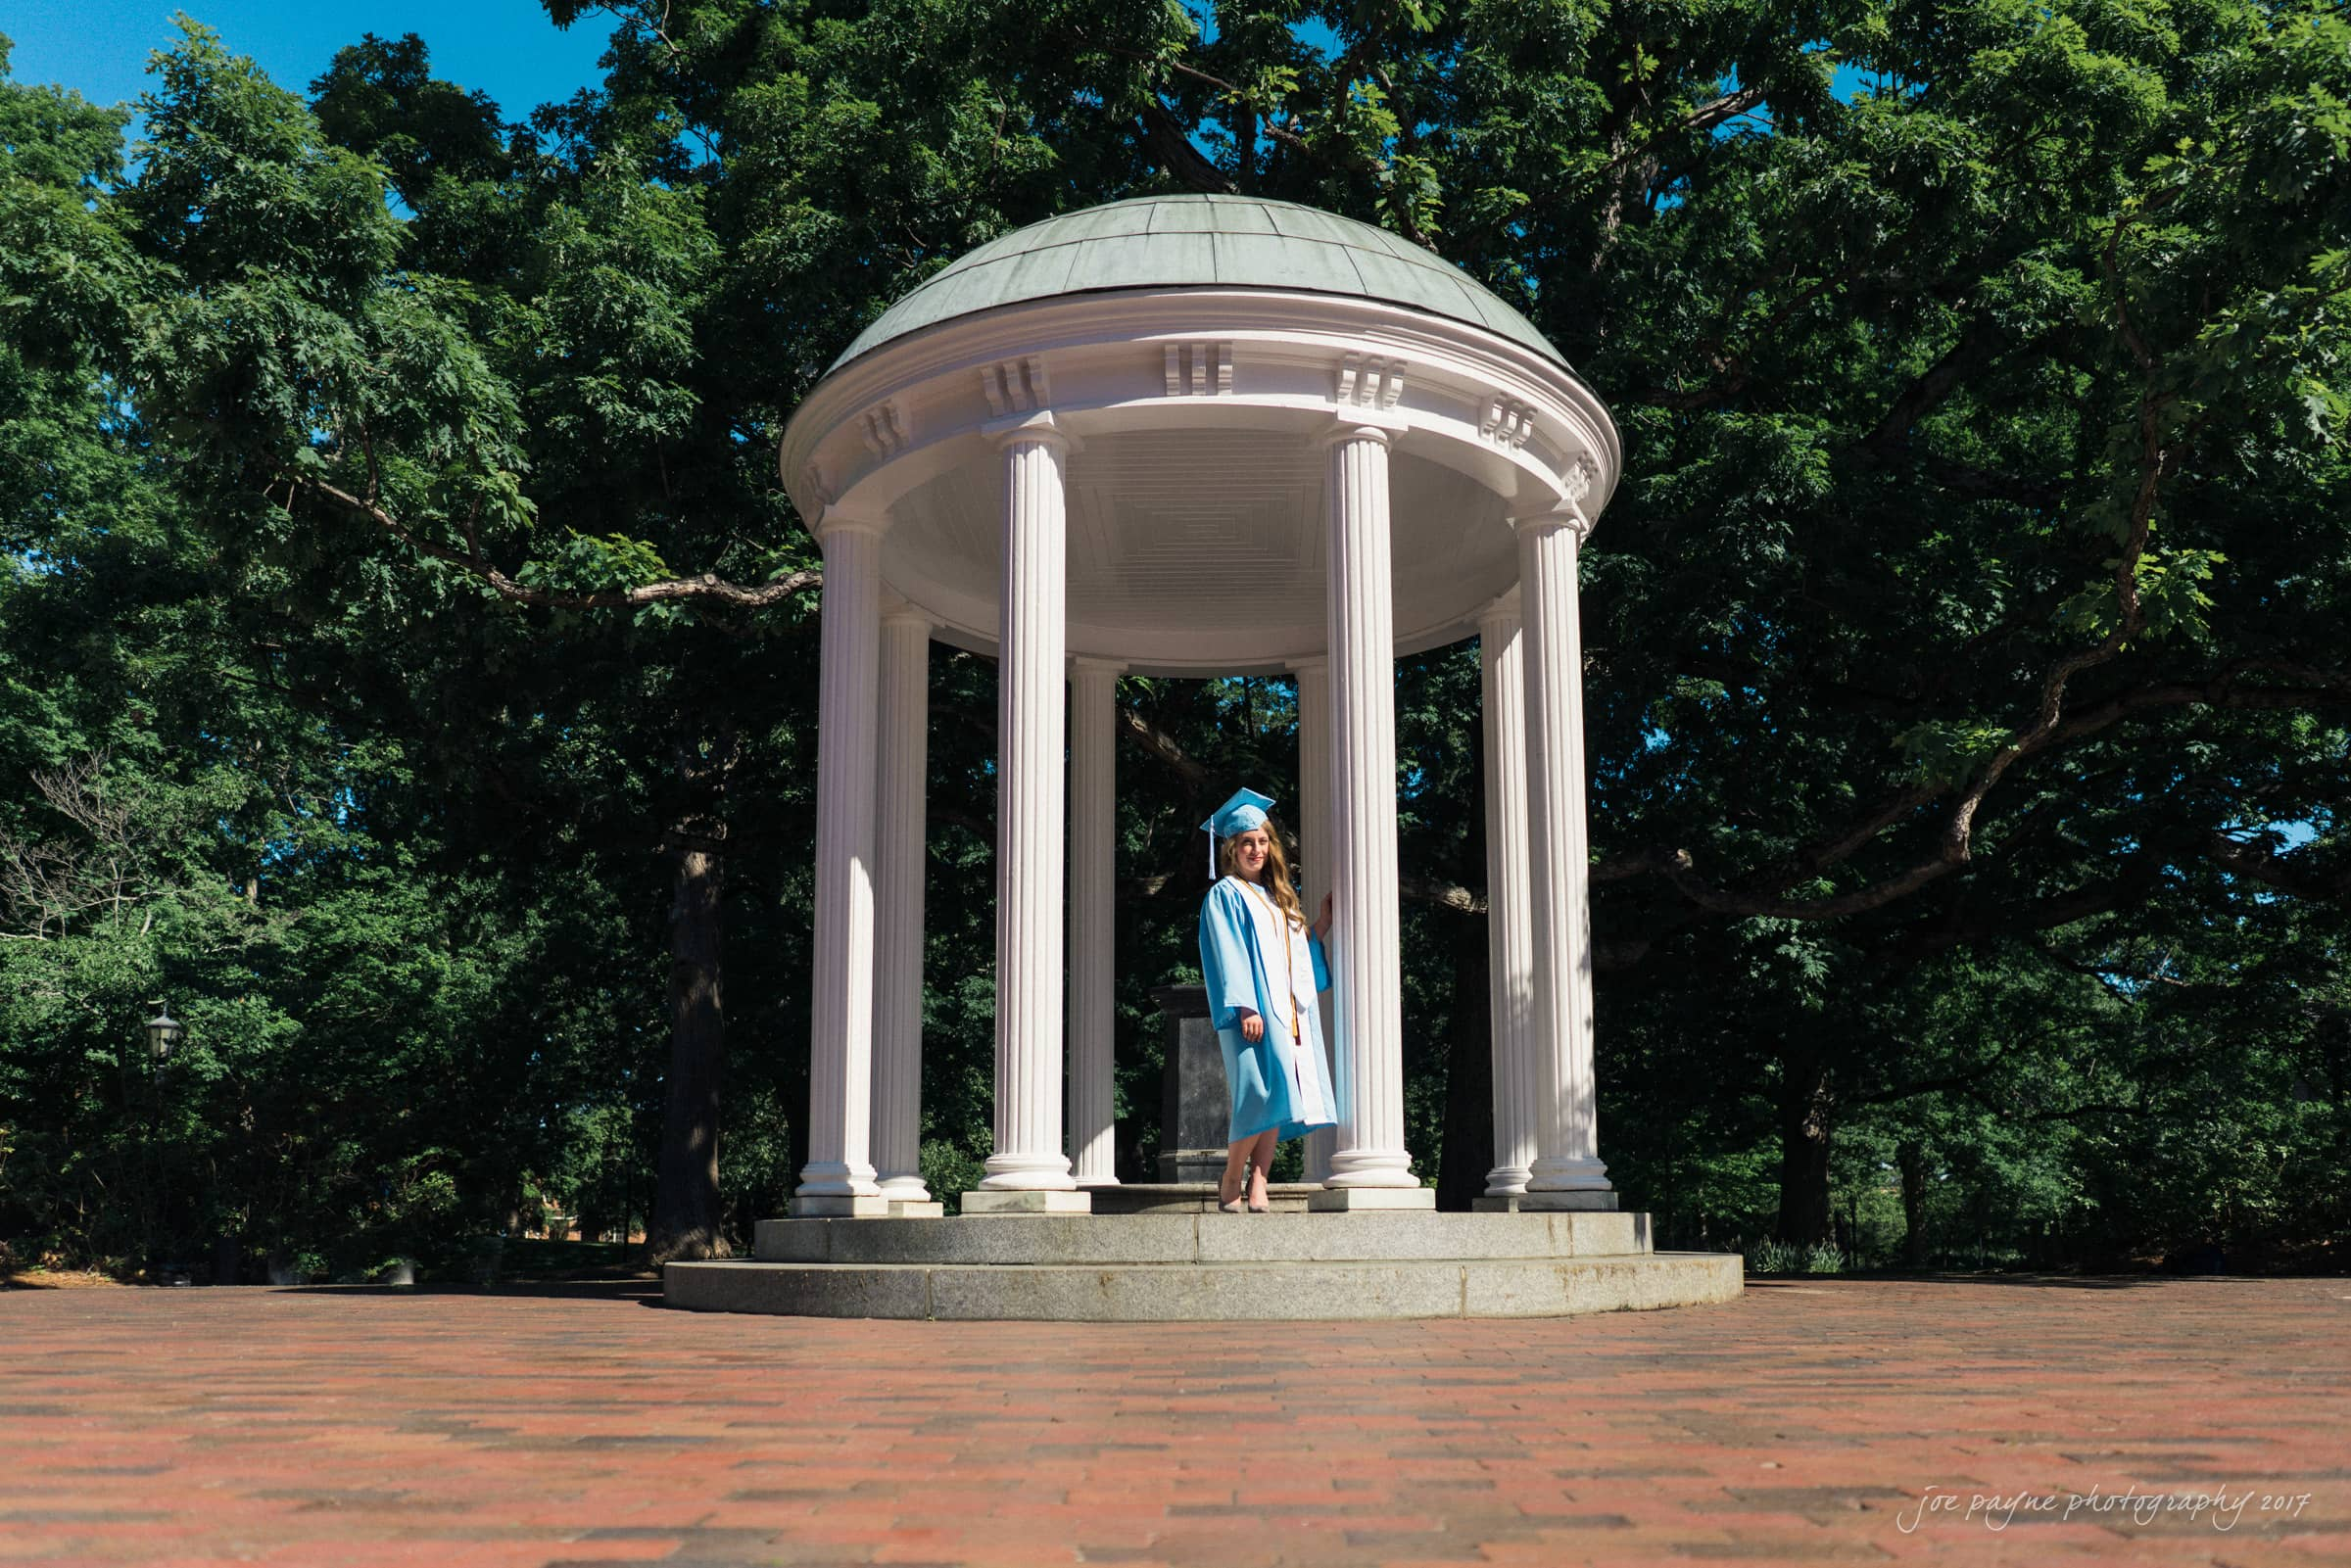 unc chapel hill graduation photographer - lauren's portraits - lauren at old well